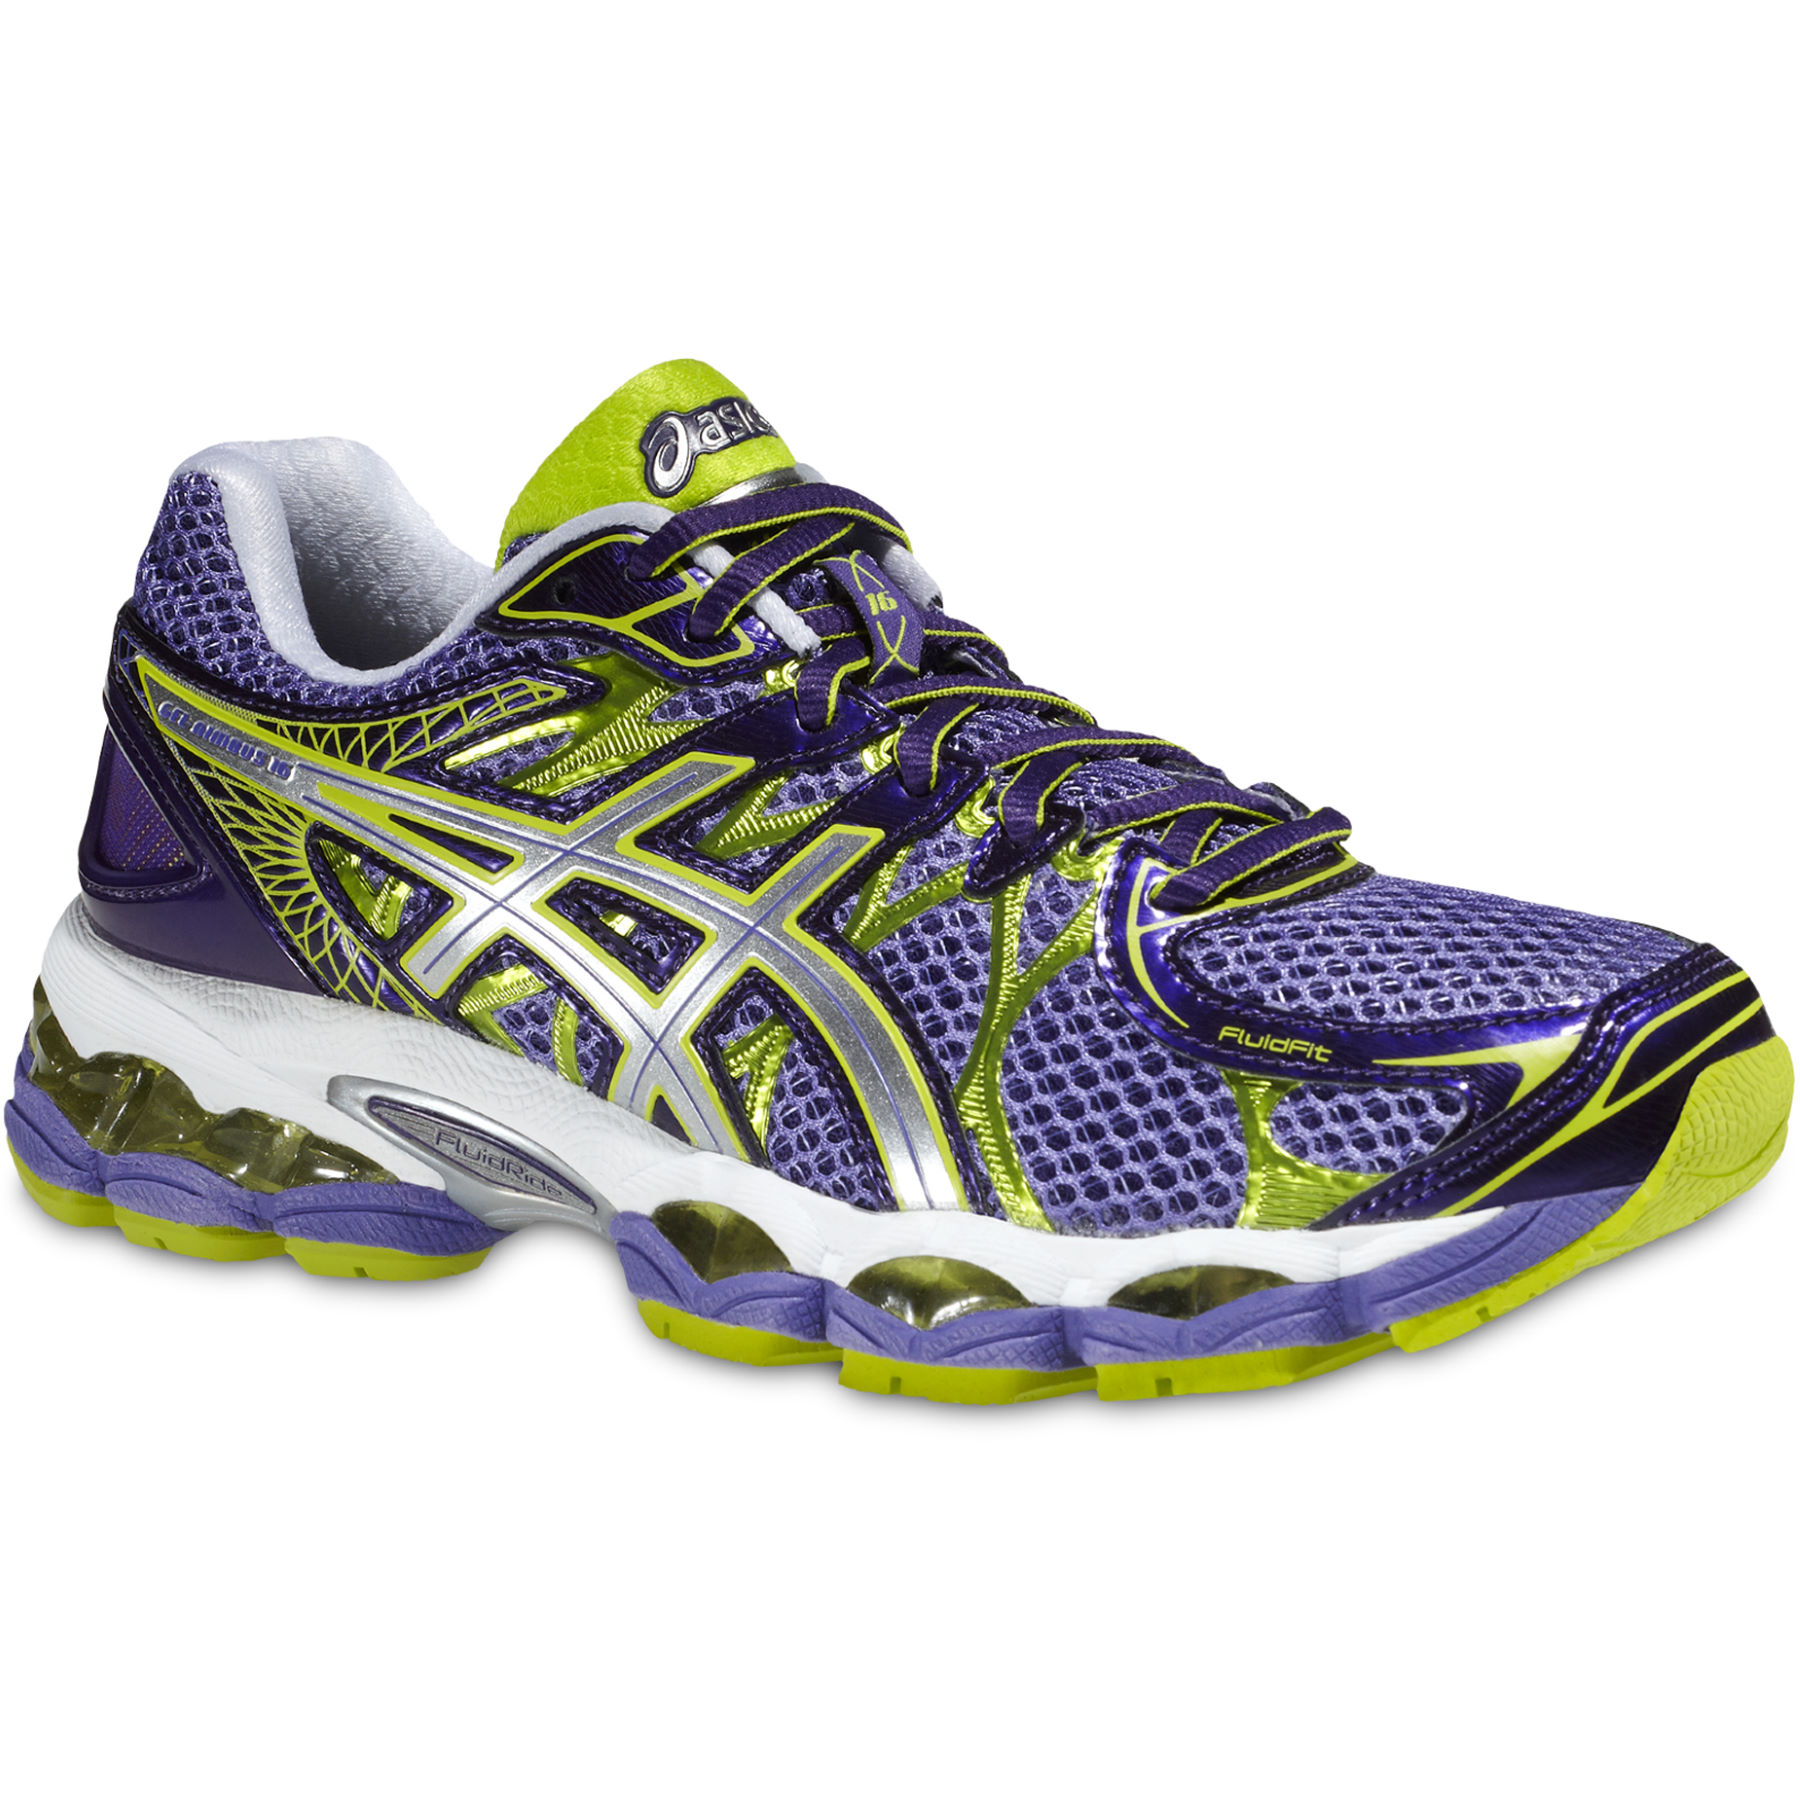 wiggle asics women 39 s gel nimbus 16 shoes aw14 cushion running shoes. Black Bedroom Furniture Sets. Home Design Ideas